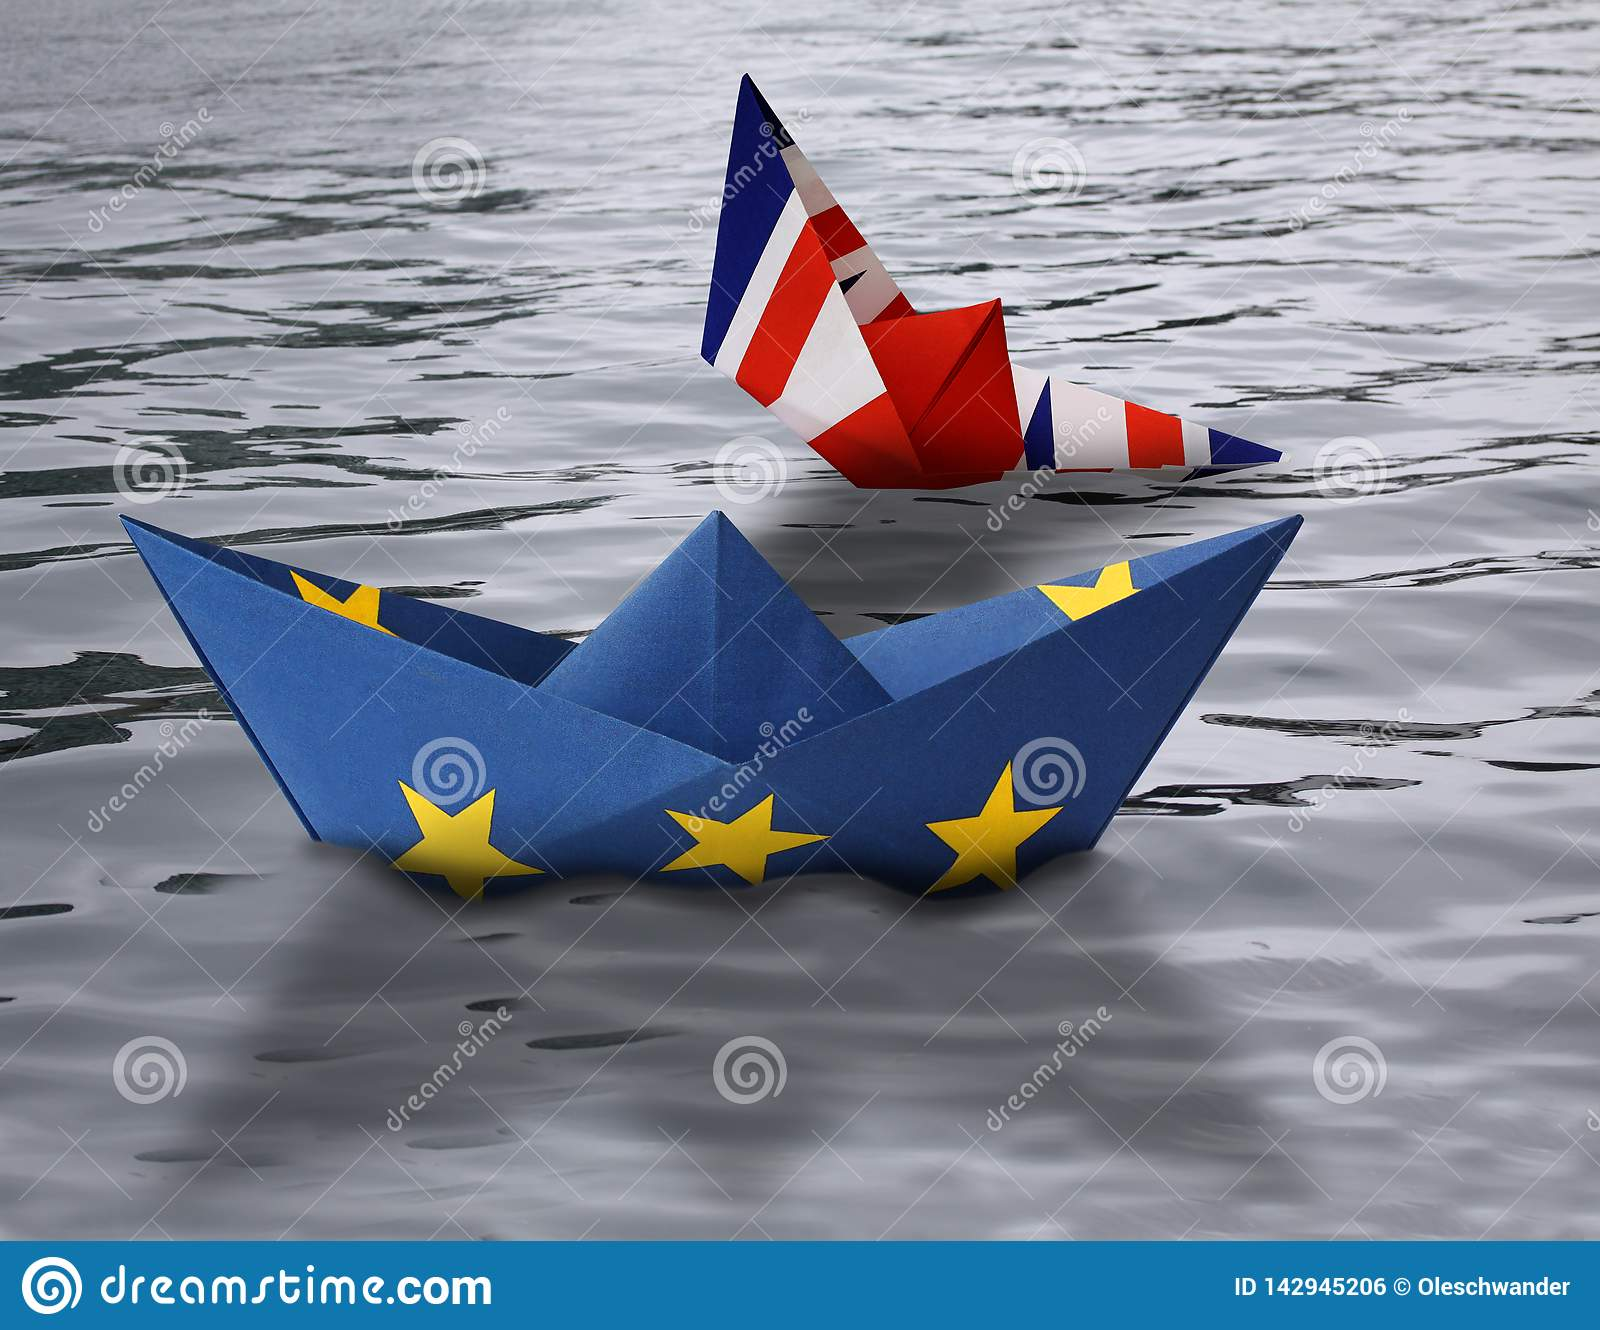 Paper ships made as European Union and British flags sailing side by side in the water - British ship sinking - concept showing En